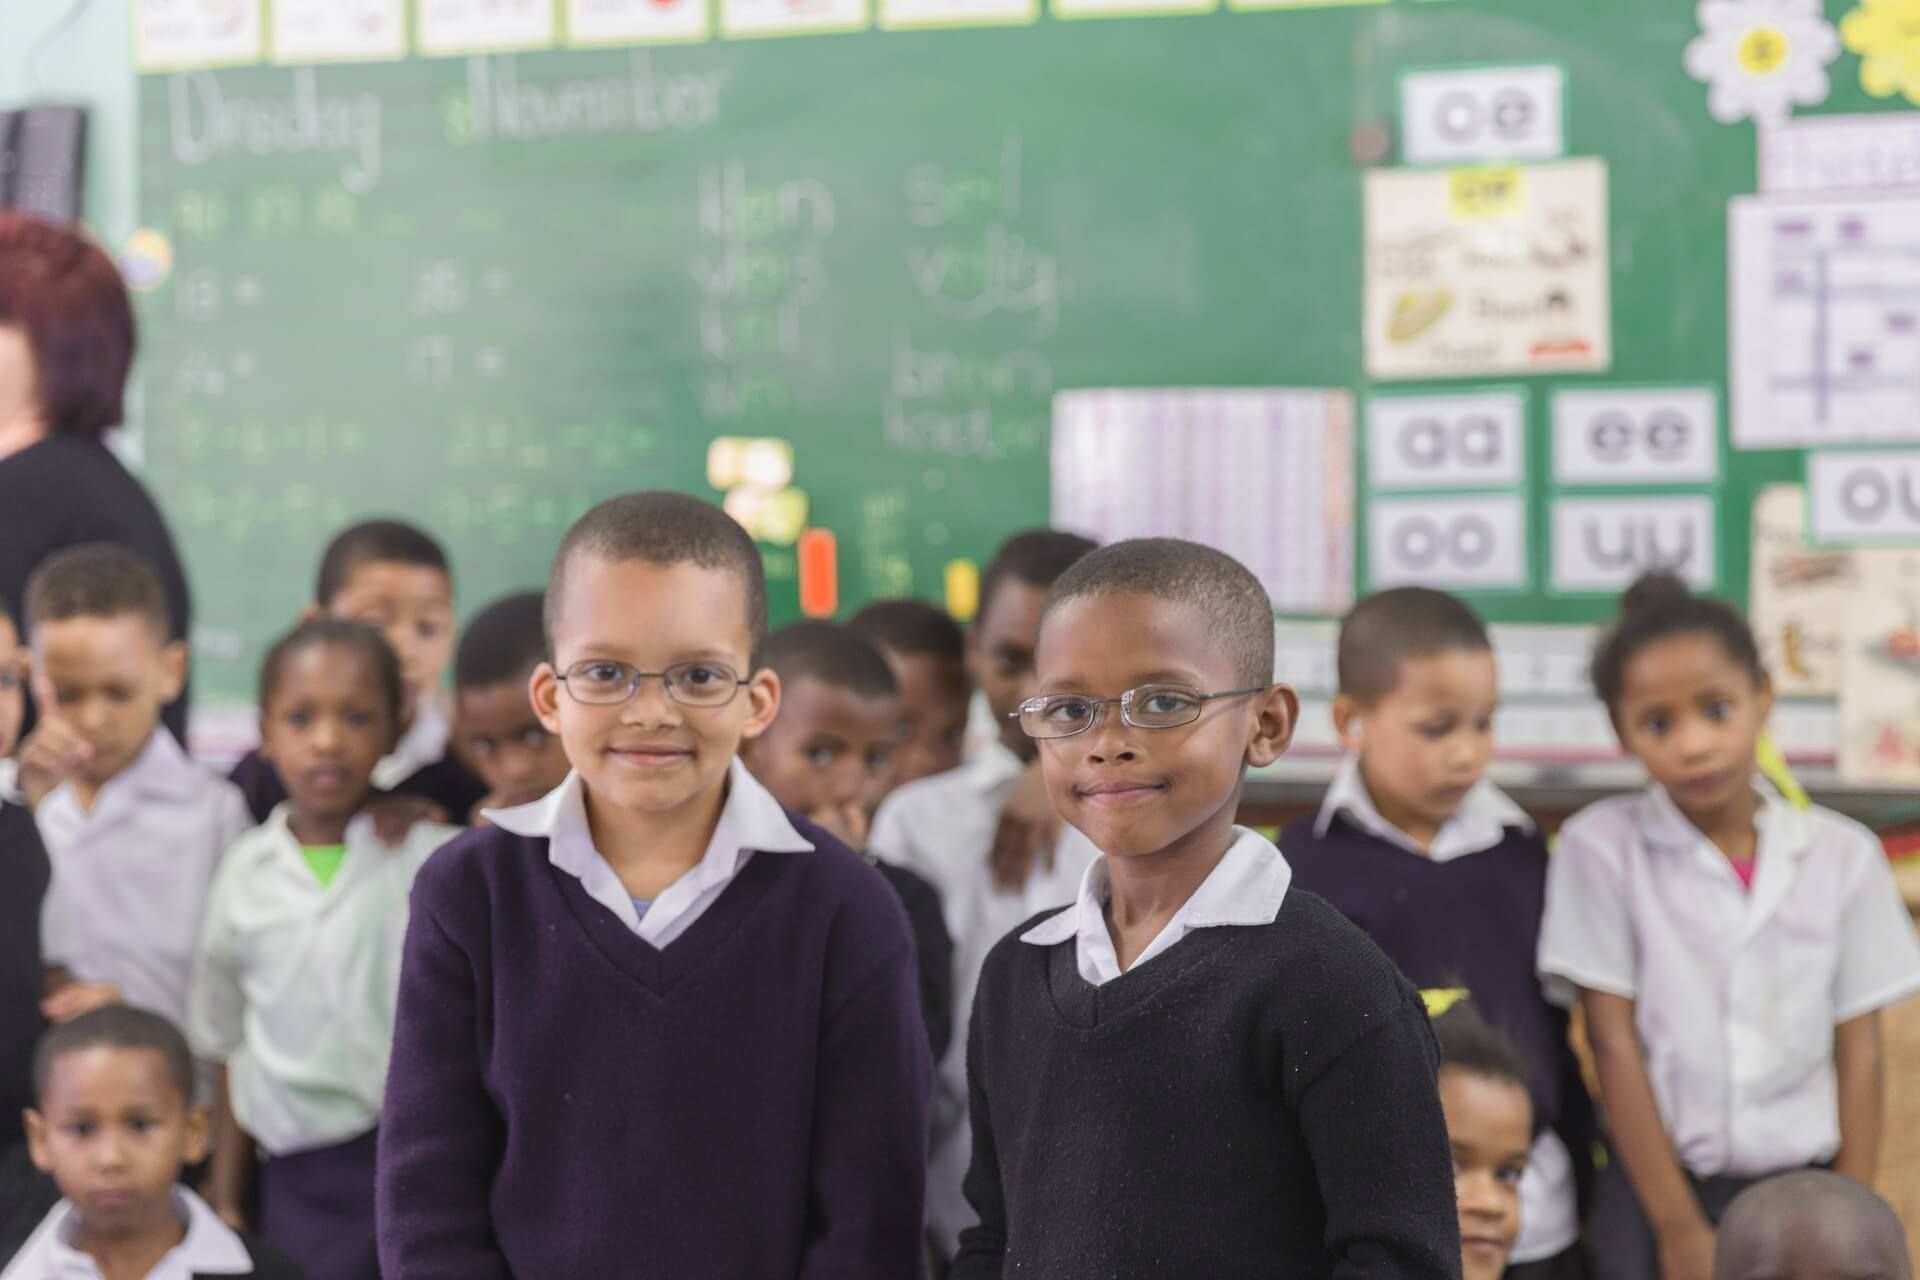 Kids wearing glasses in classroom